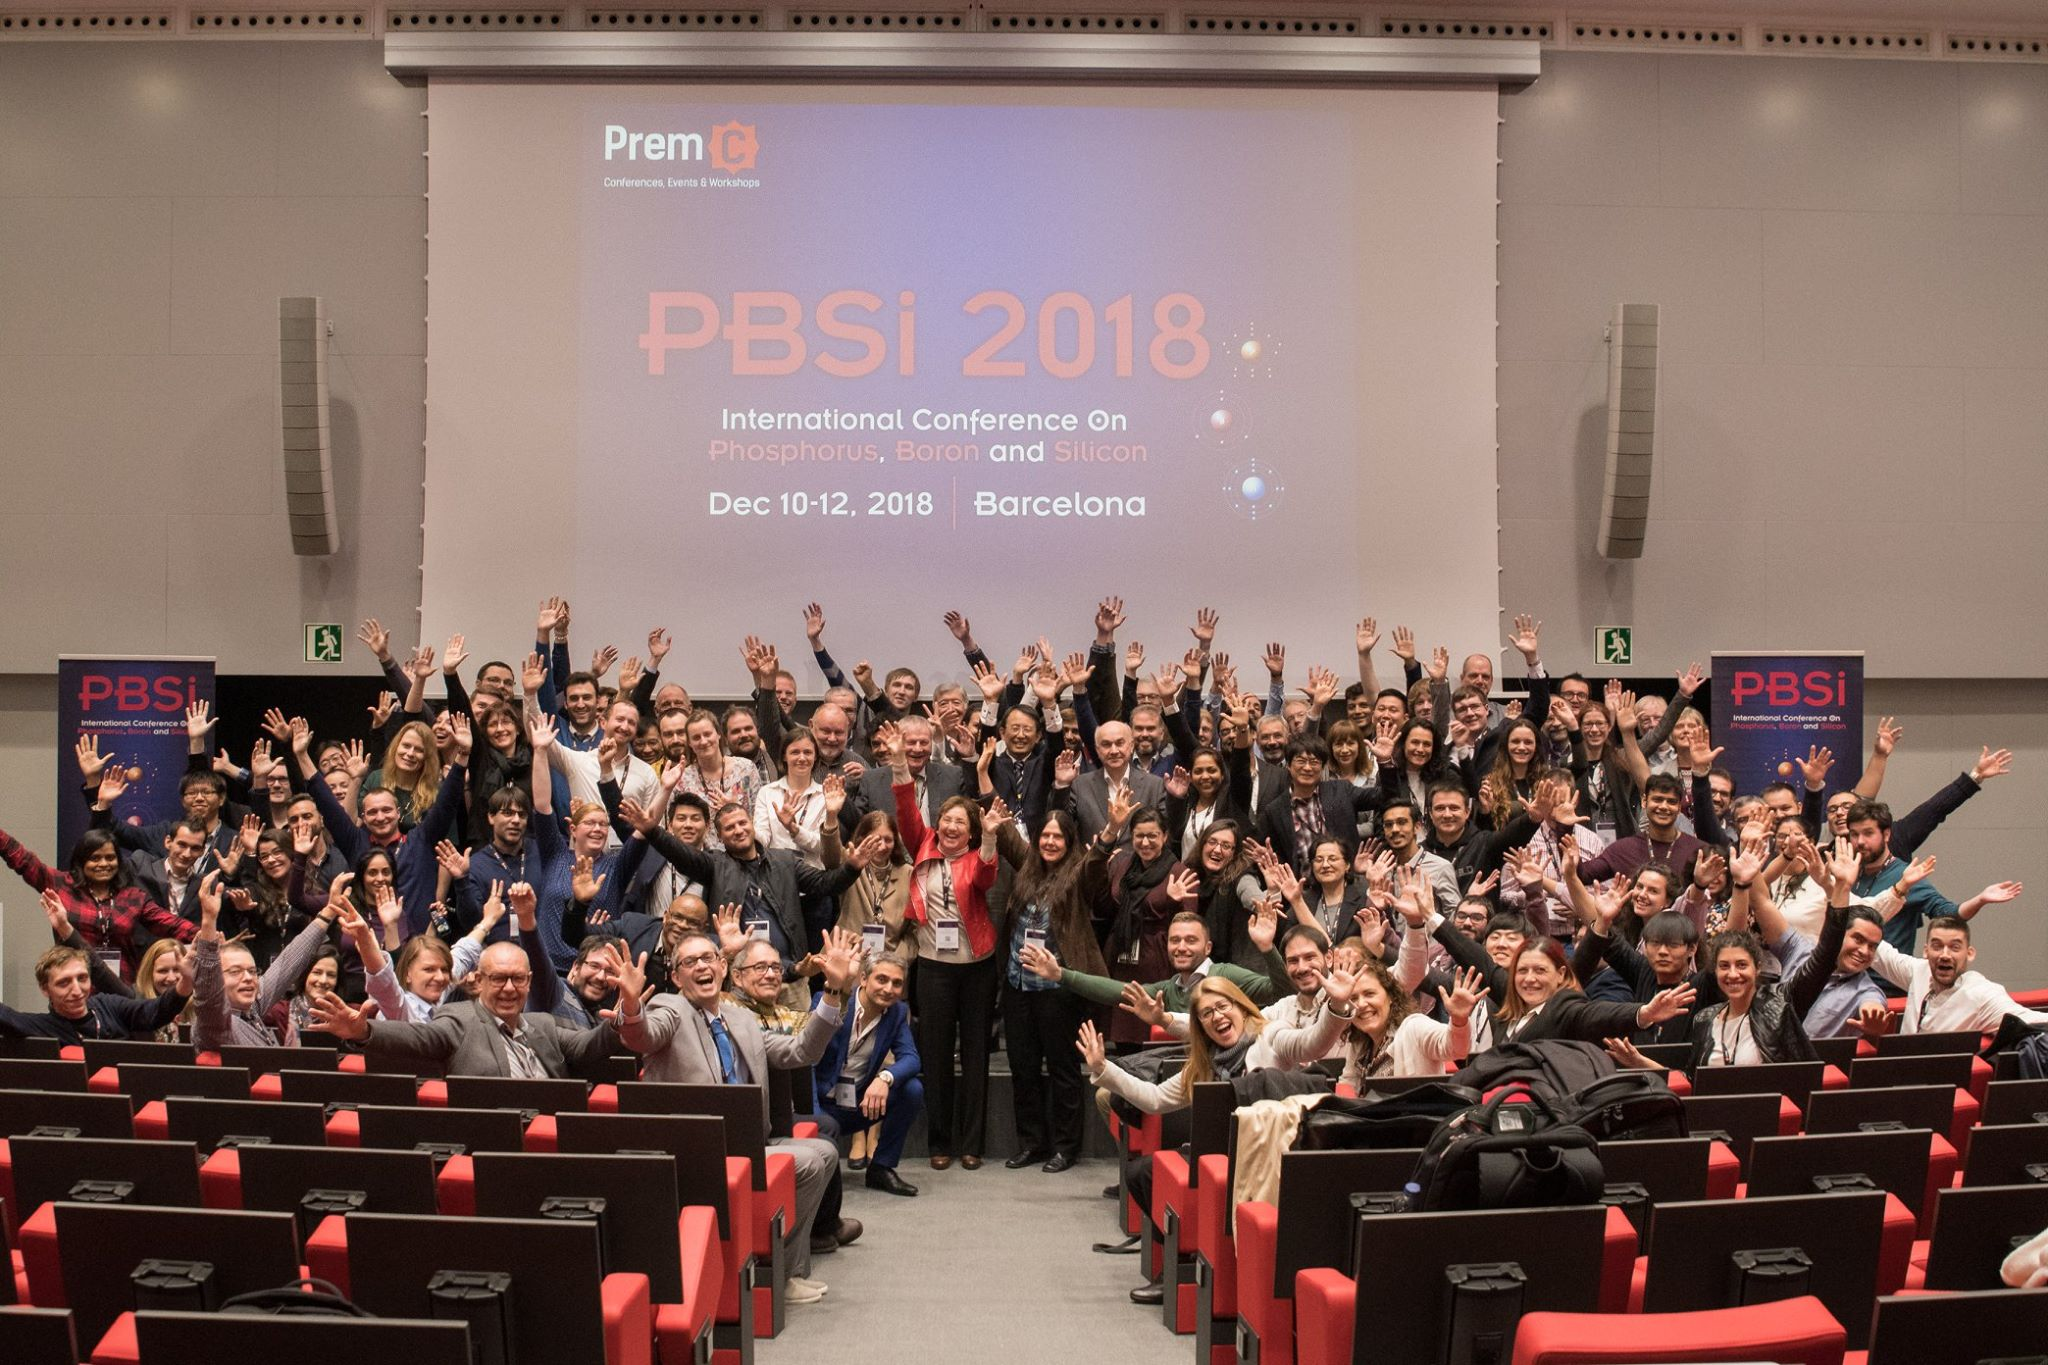 Group picture - PBSi